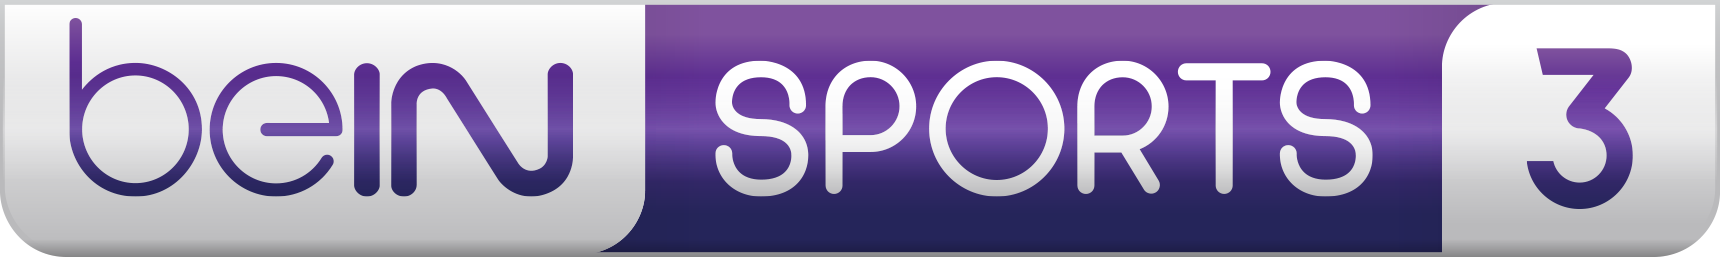 Image result for bein sport 3